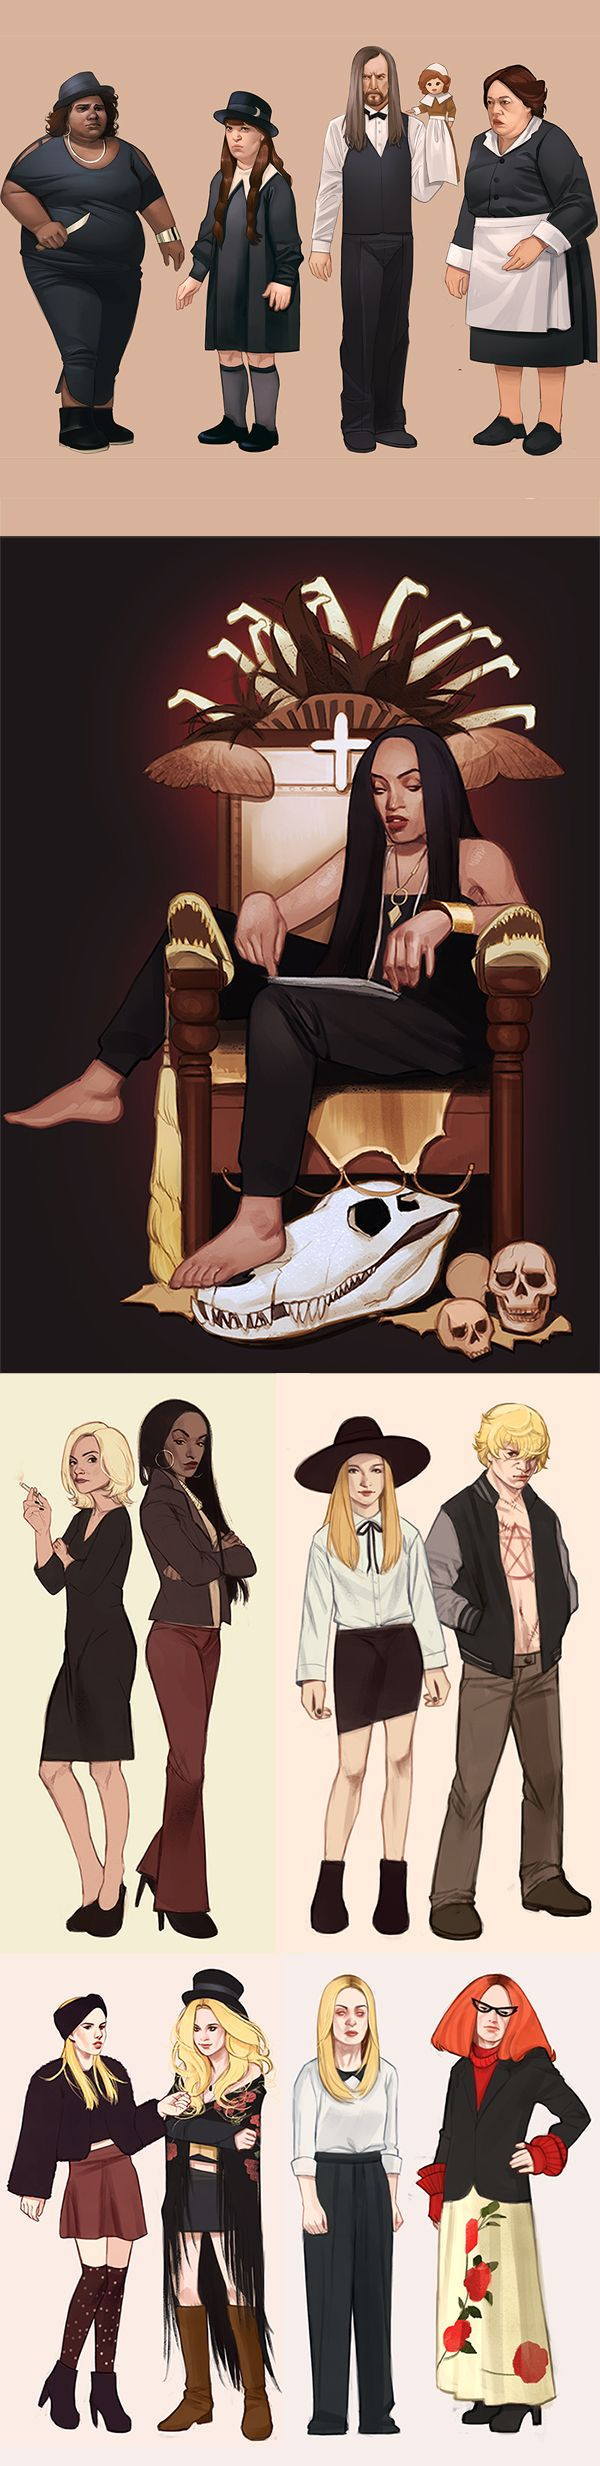 American Horror Story Coven compilation by mannequin-atelier.deviantart.com on @deviantART